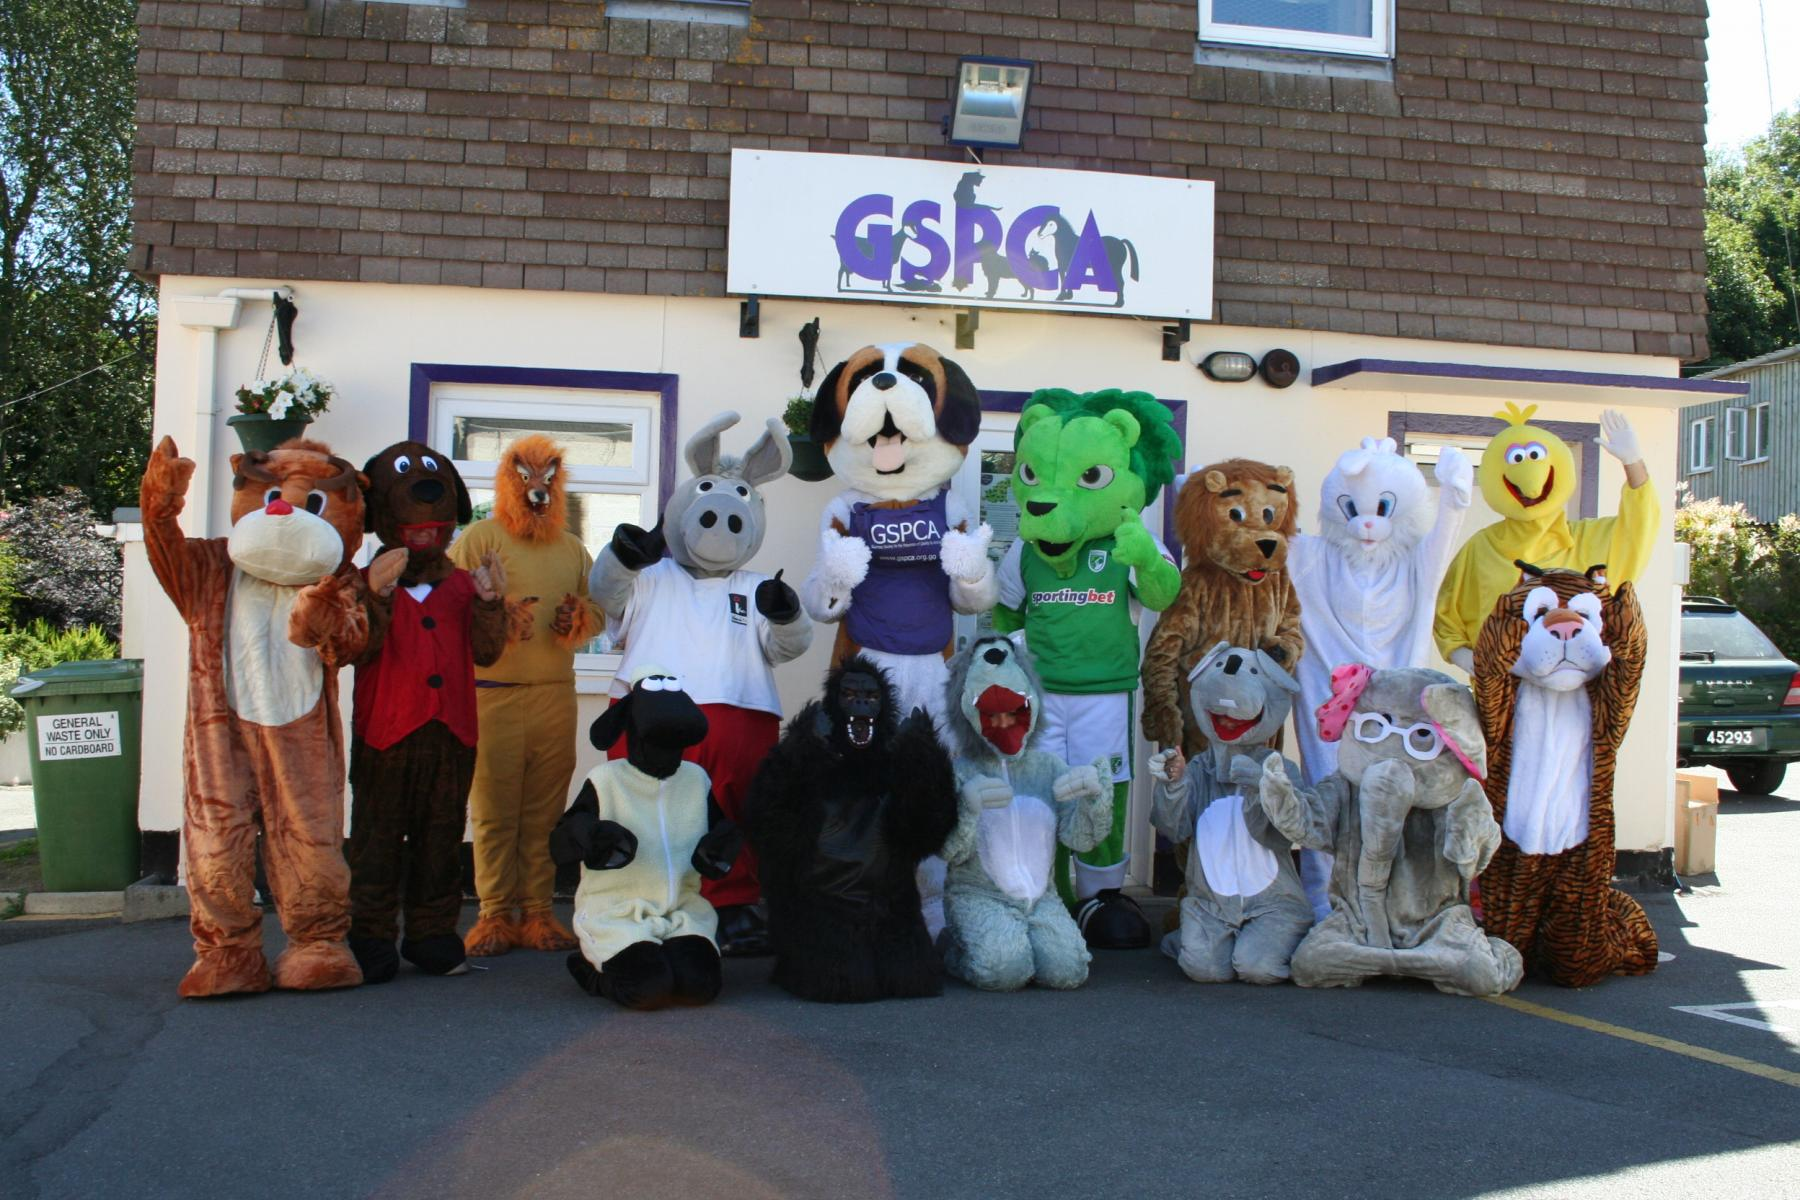 Mascot Racing in Guernsey with Roary the GFC Lion, Daniel the Donkey from Island FM, Bernard the GSPCA Mascot and animal friends